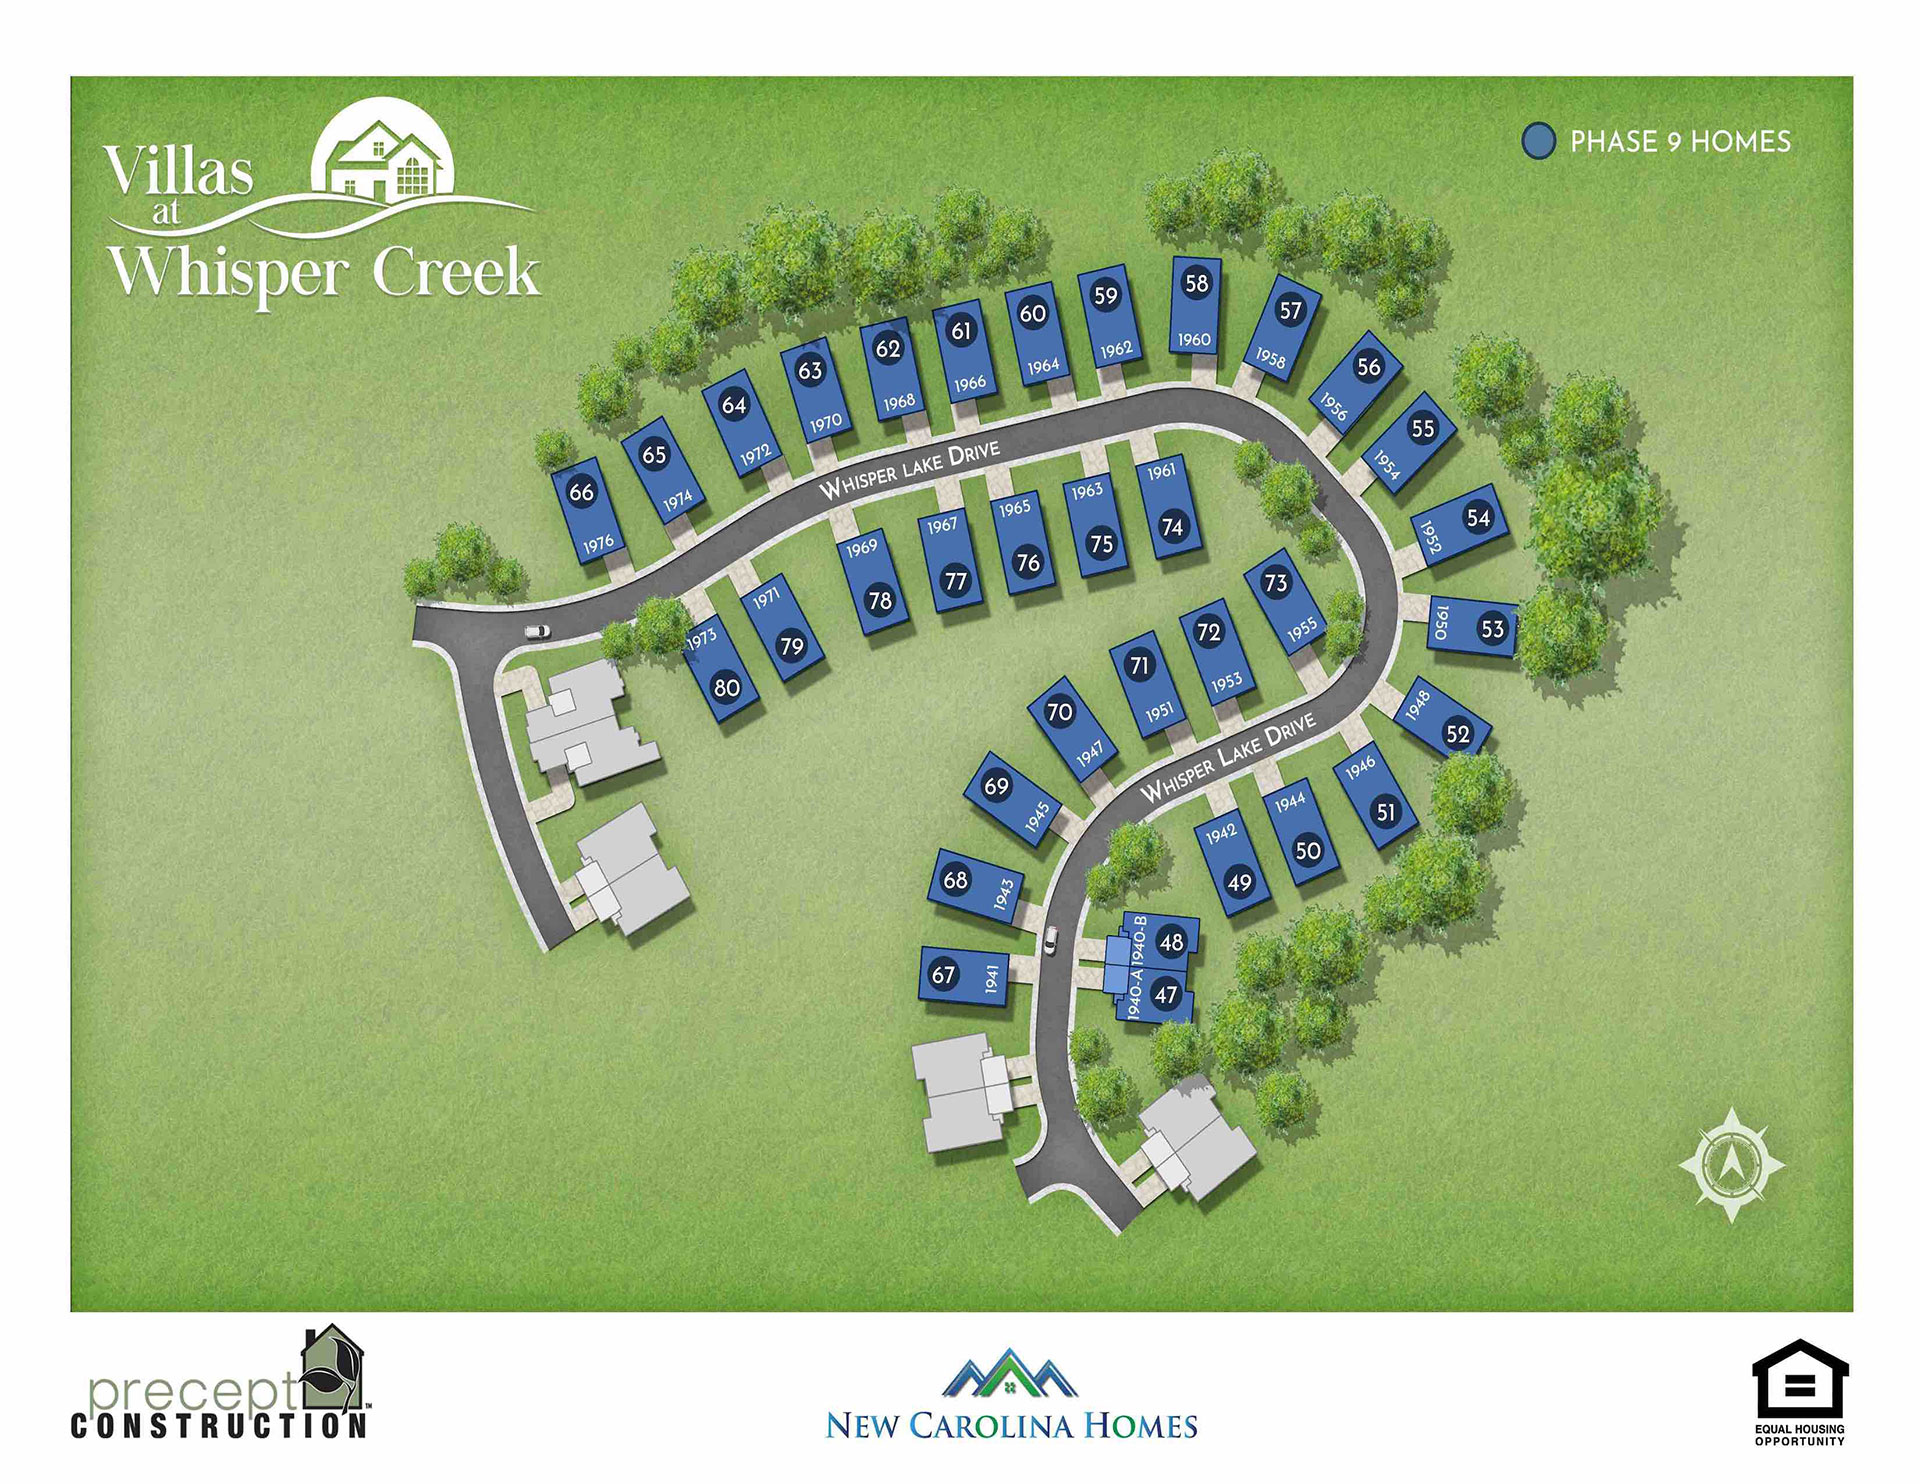 Site Map of The Villas at Whisper Creek